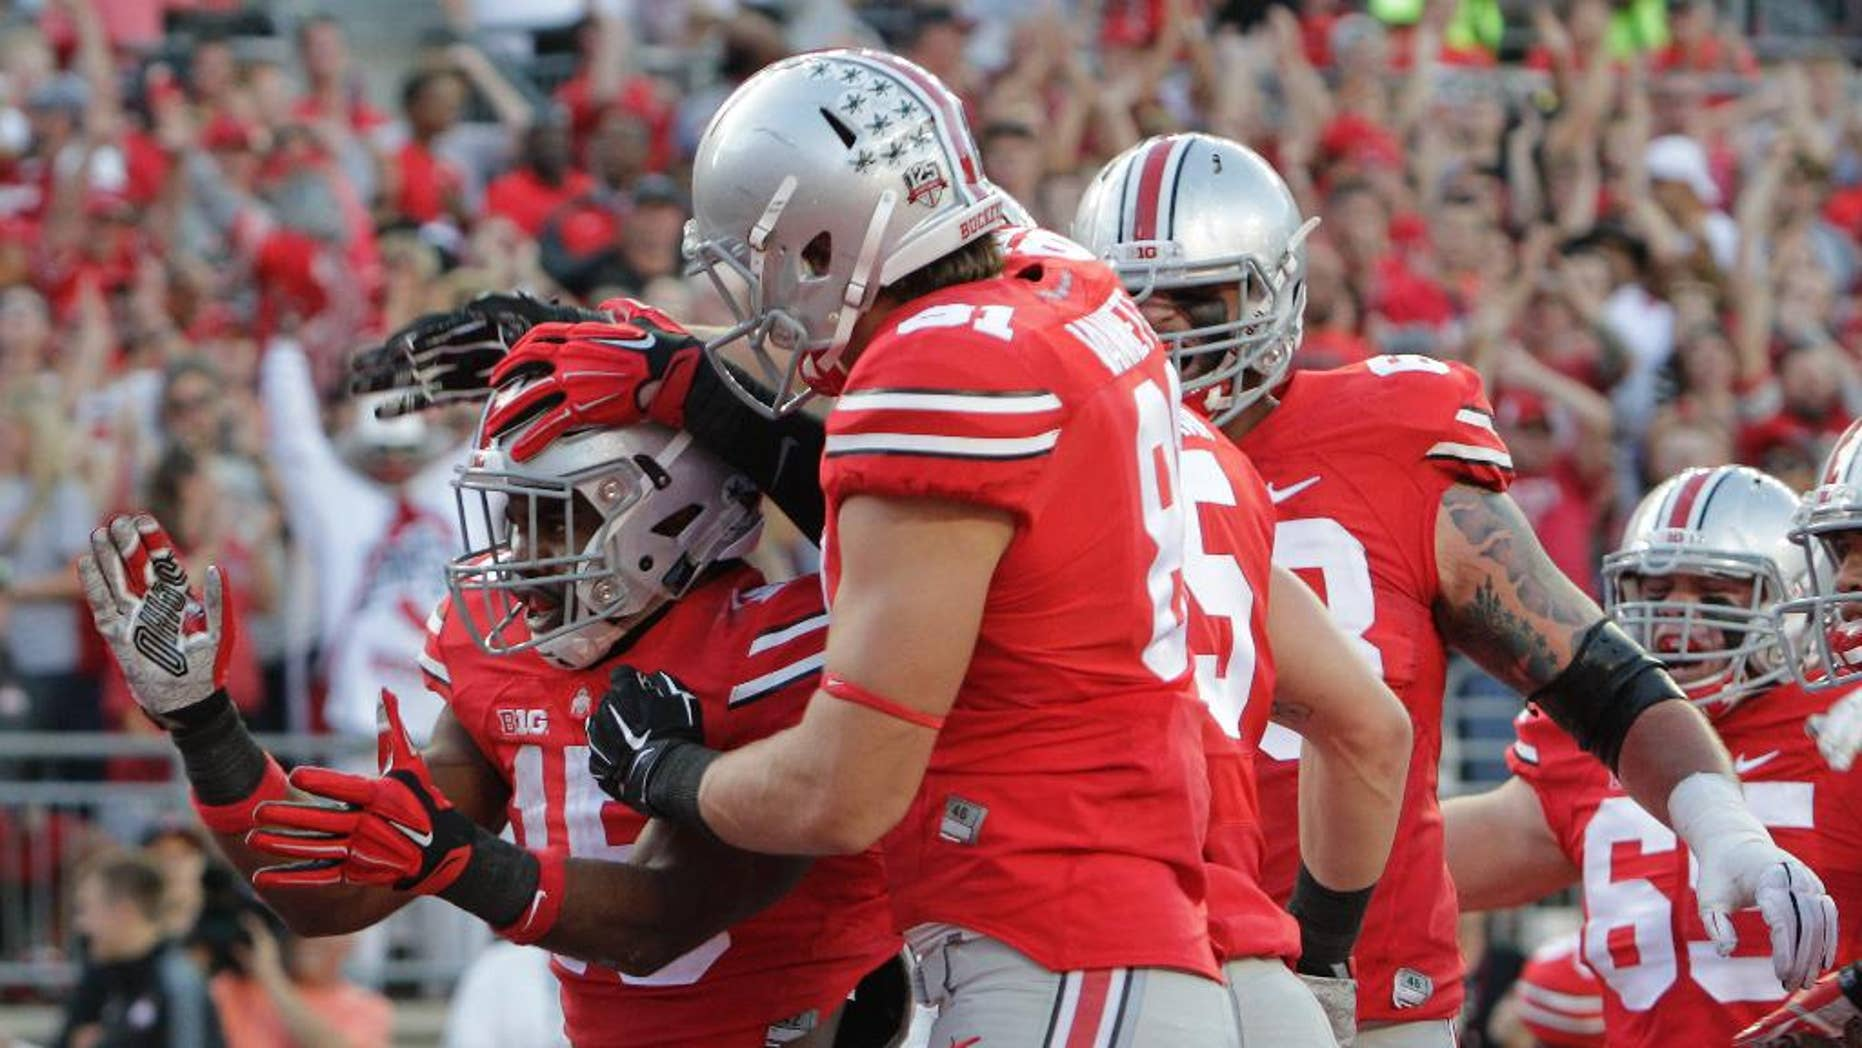 FILE - In this Sept. 27, 2014, file photo, Ohio State running back Ezekiel Elliott, left, celebrates his touchdown against Cincinnati during the first quarter of an NCAA college football game in Columbus, Ohio. All anyone wants to talk about on sports call-in shows in Ohio's capital city is No. 20 Ohio State's porous pass defense. Yet the offense has scored 116 points and piled up 1,338 yards in its last two games heading into the Big Ten opener against a leaky Maryland defense. (AP Photo/Jay LaPrete, File)